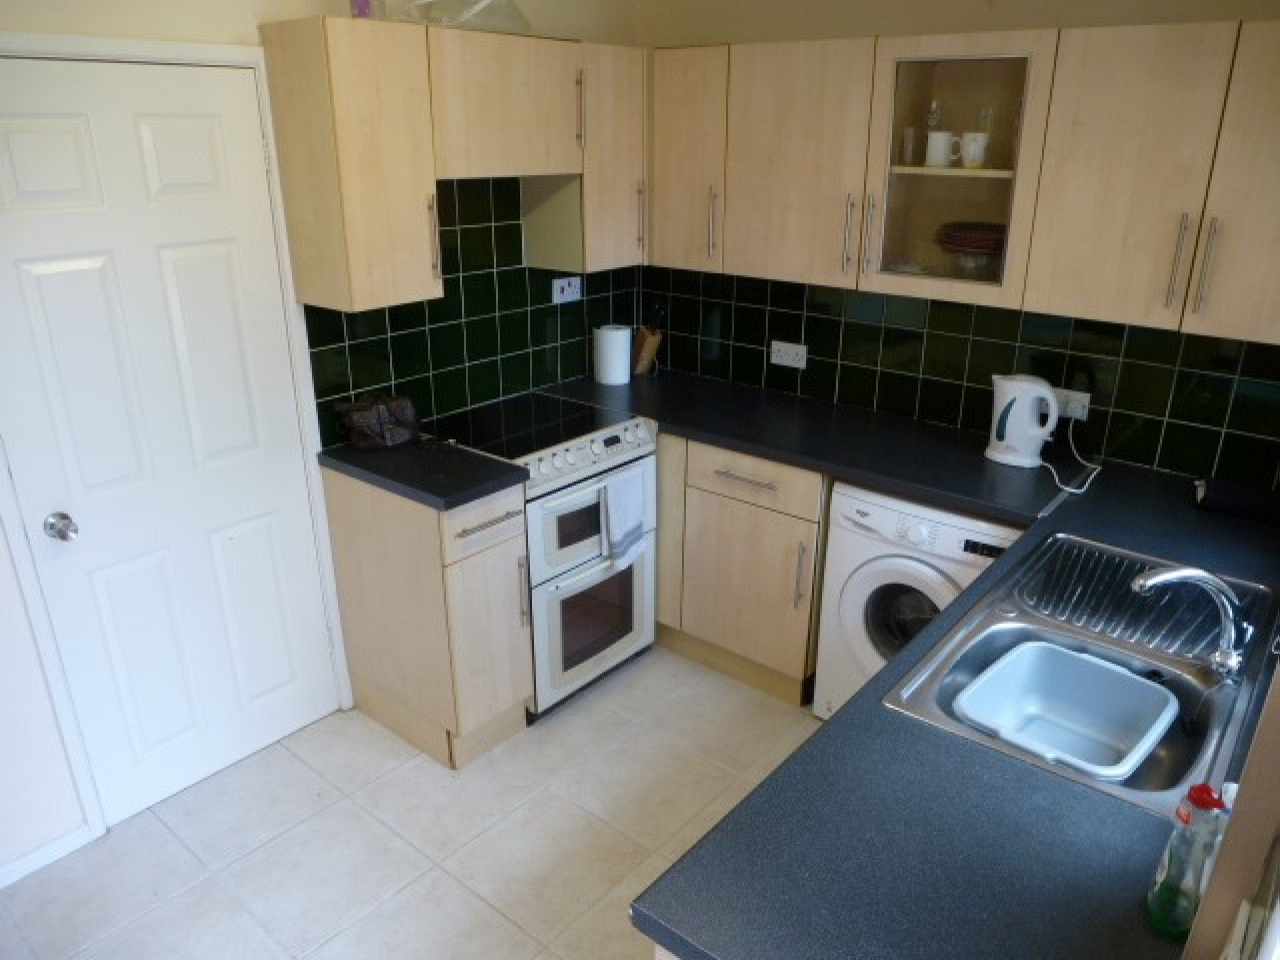 2 Bedroom Semi-detached House For Sale - Photograph 4